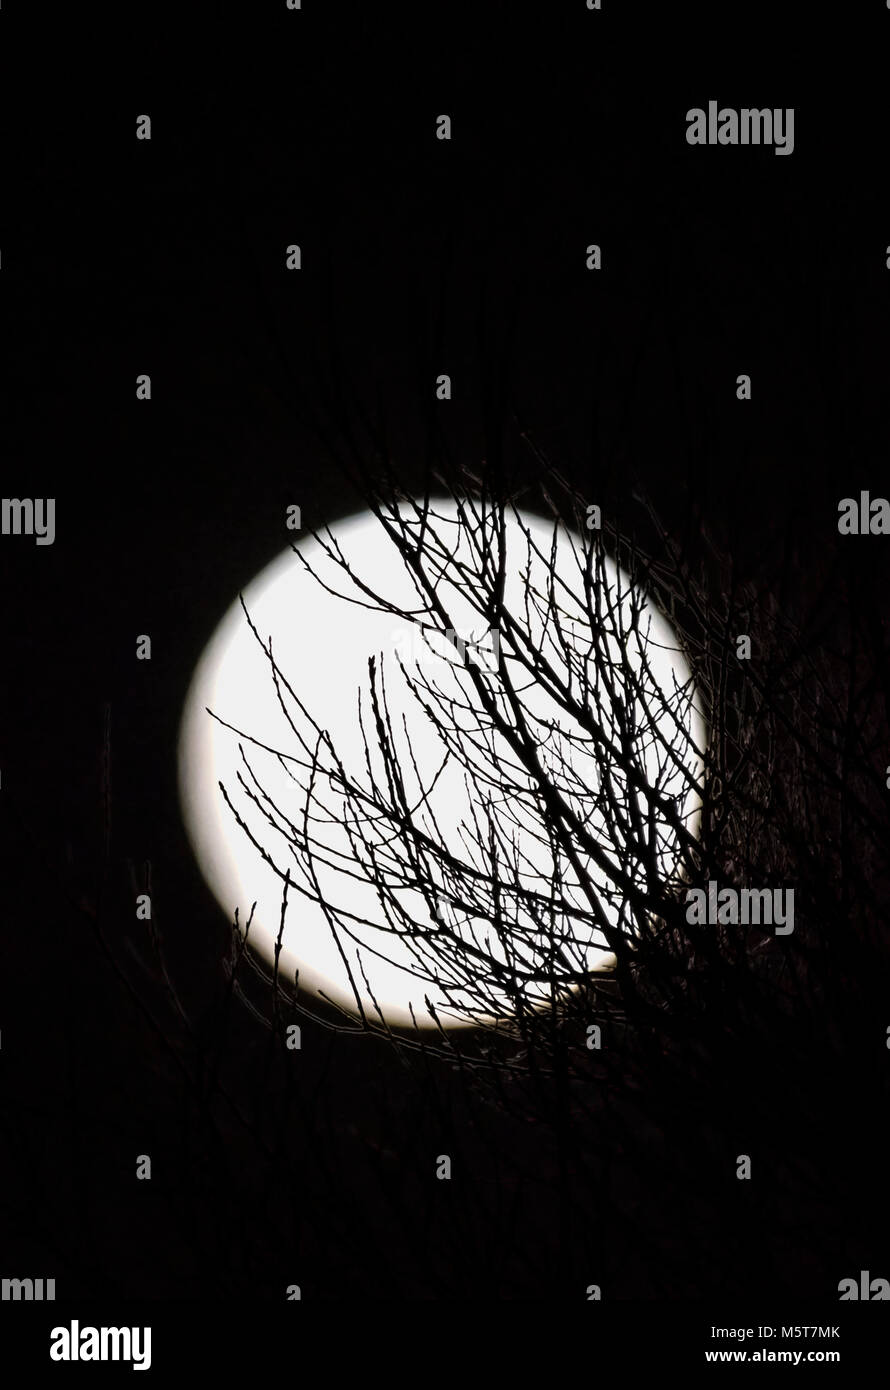 Supermoon through trees on 1st January 2018 taken from the south of England, UK. Full moon at night in Winter. Portrait - Stock Image